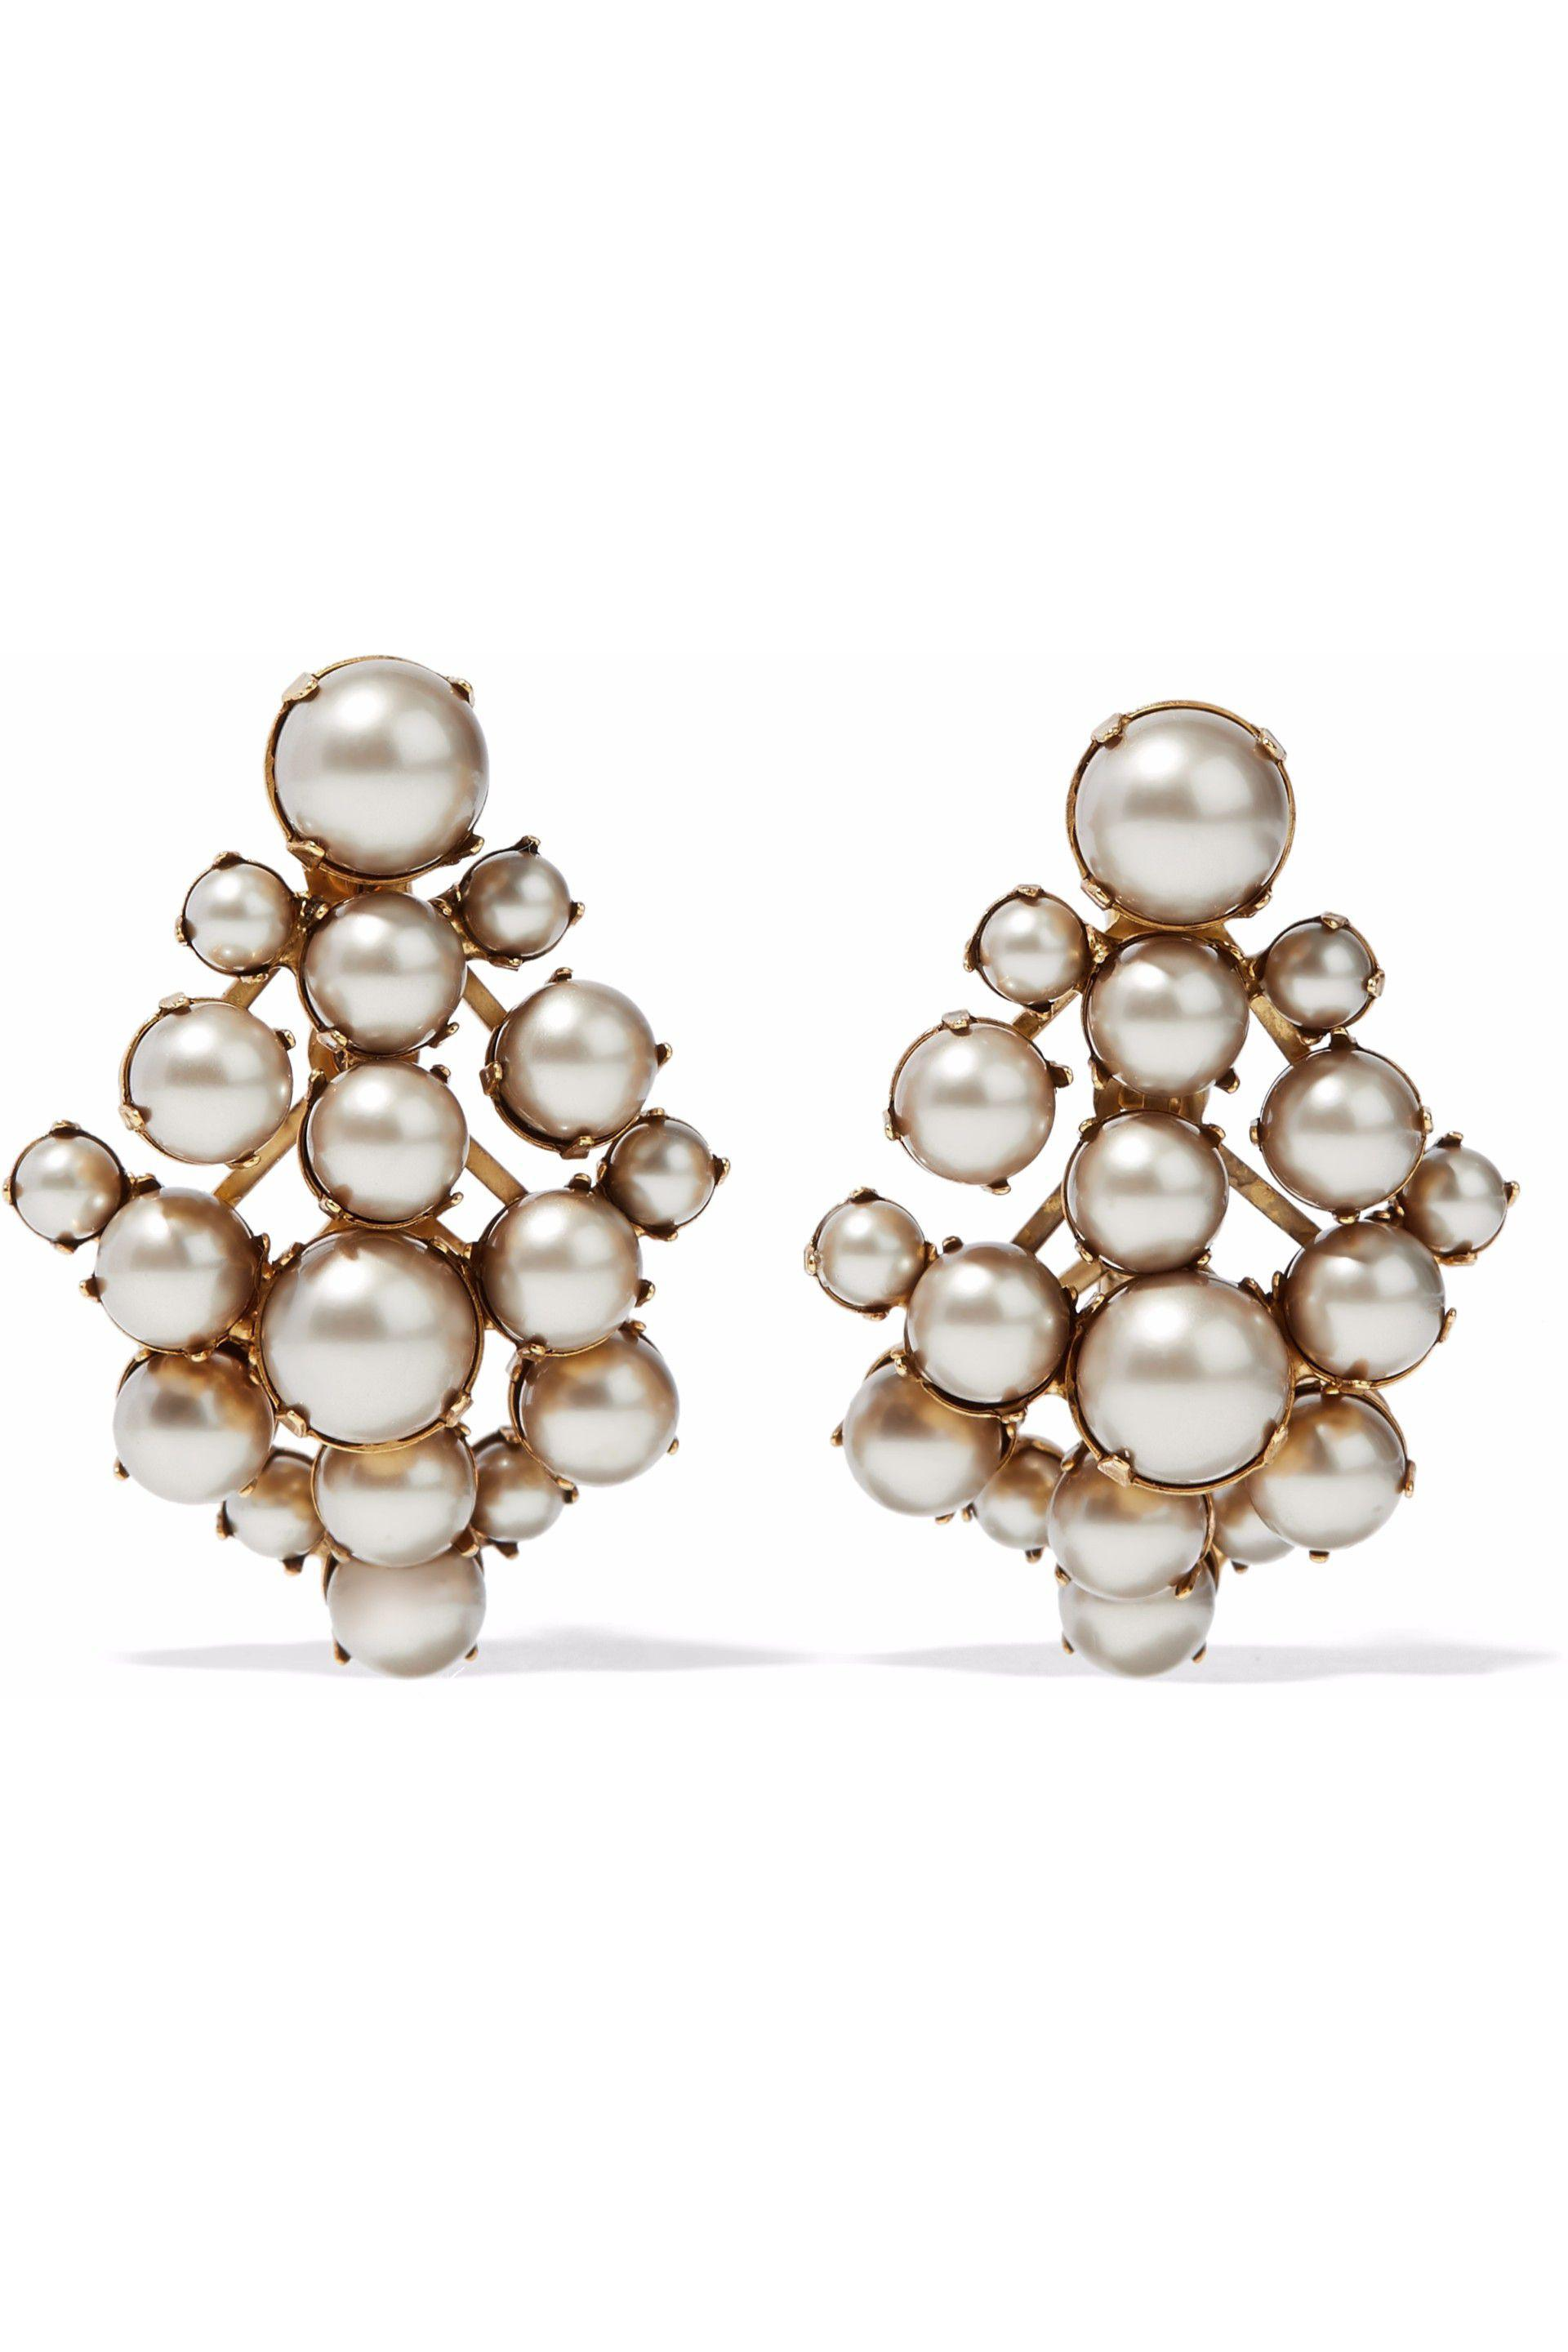 faux asp earrings pearl gold stud p drop